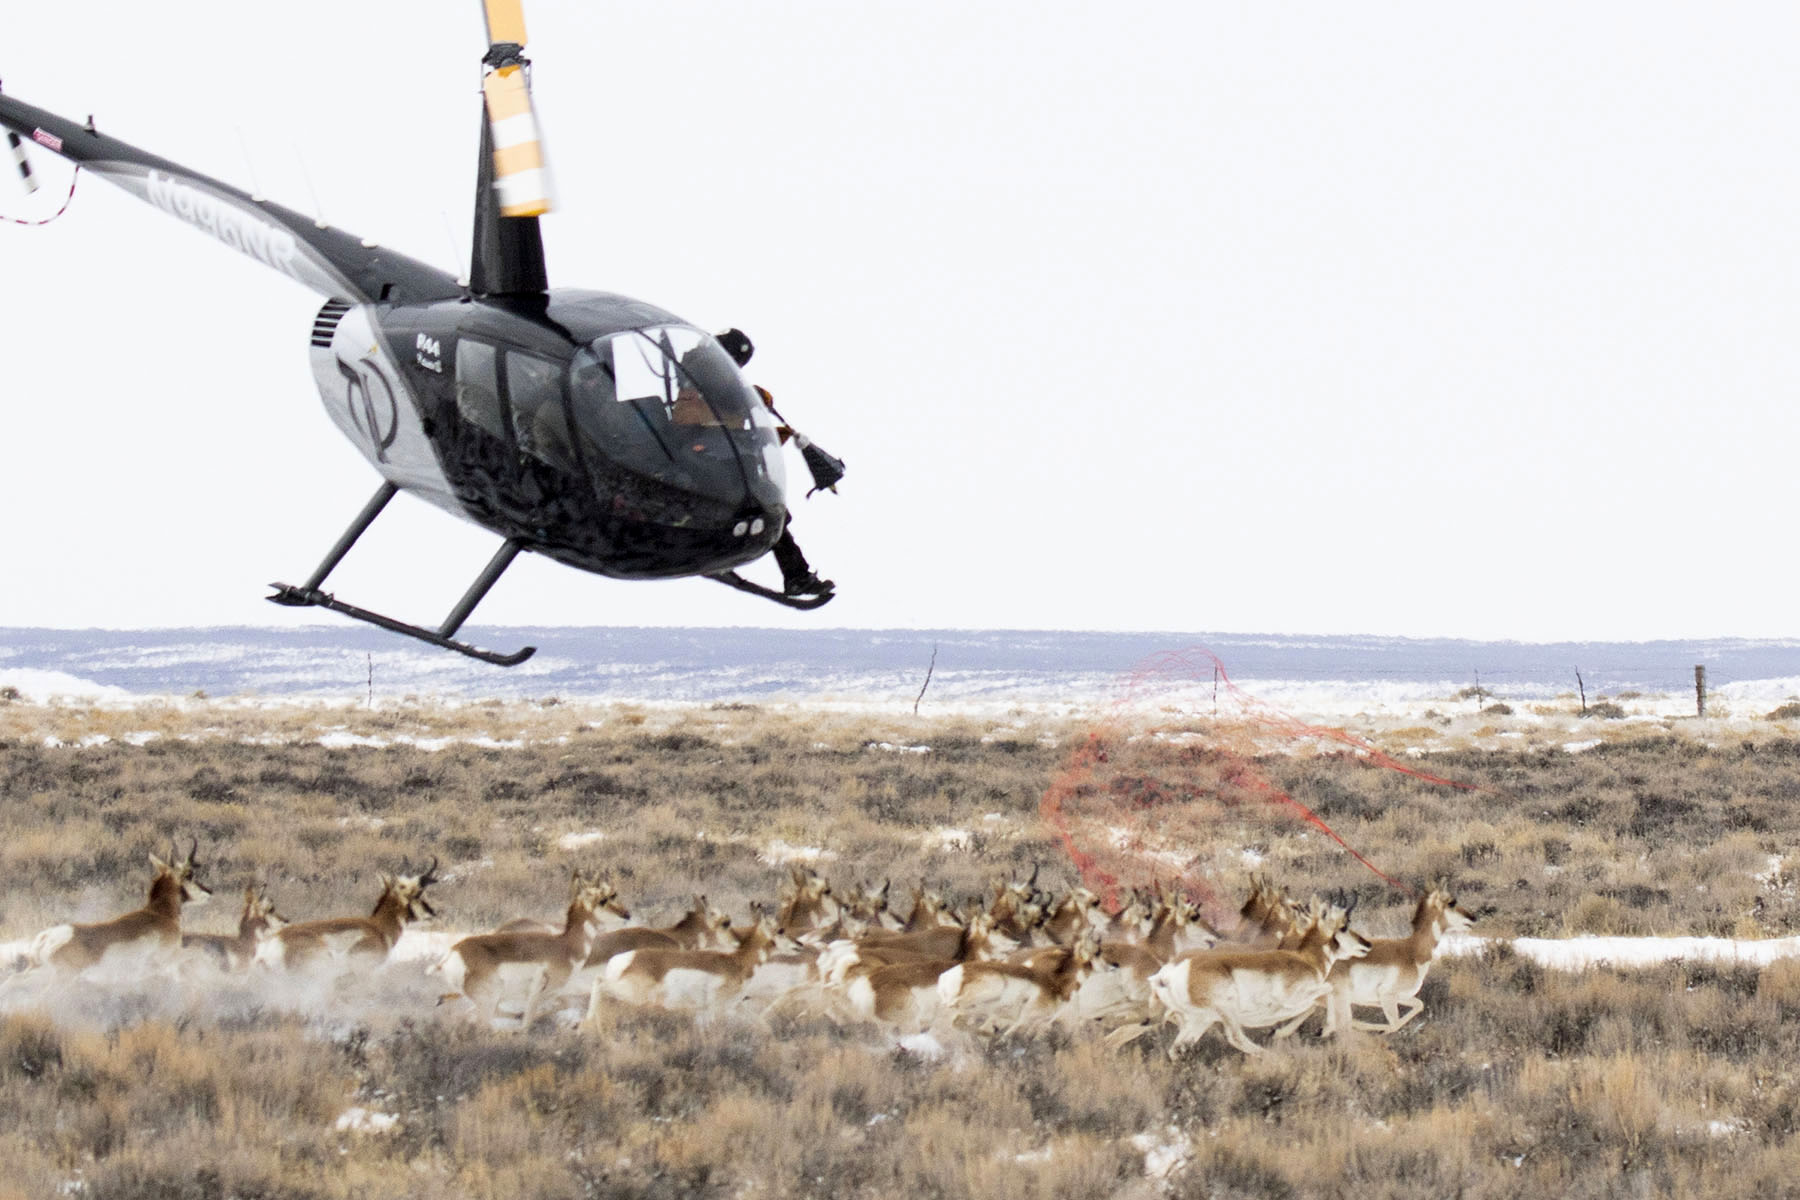 Pronghorn Collared to Supplement Migration Data